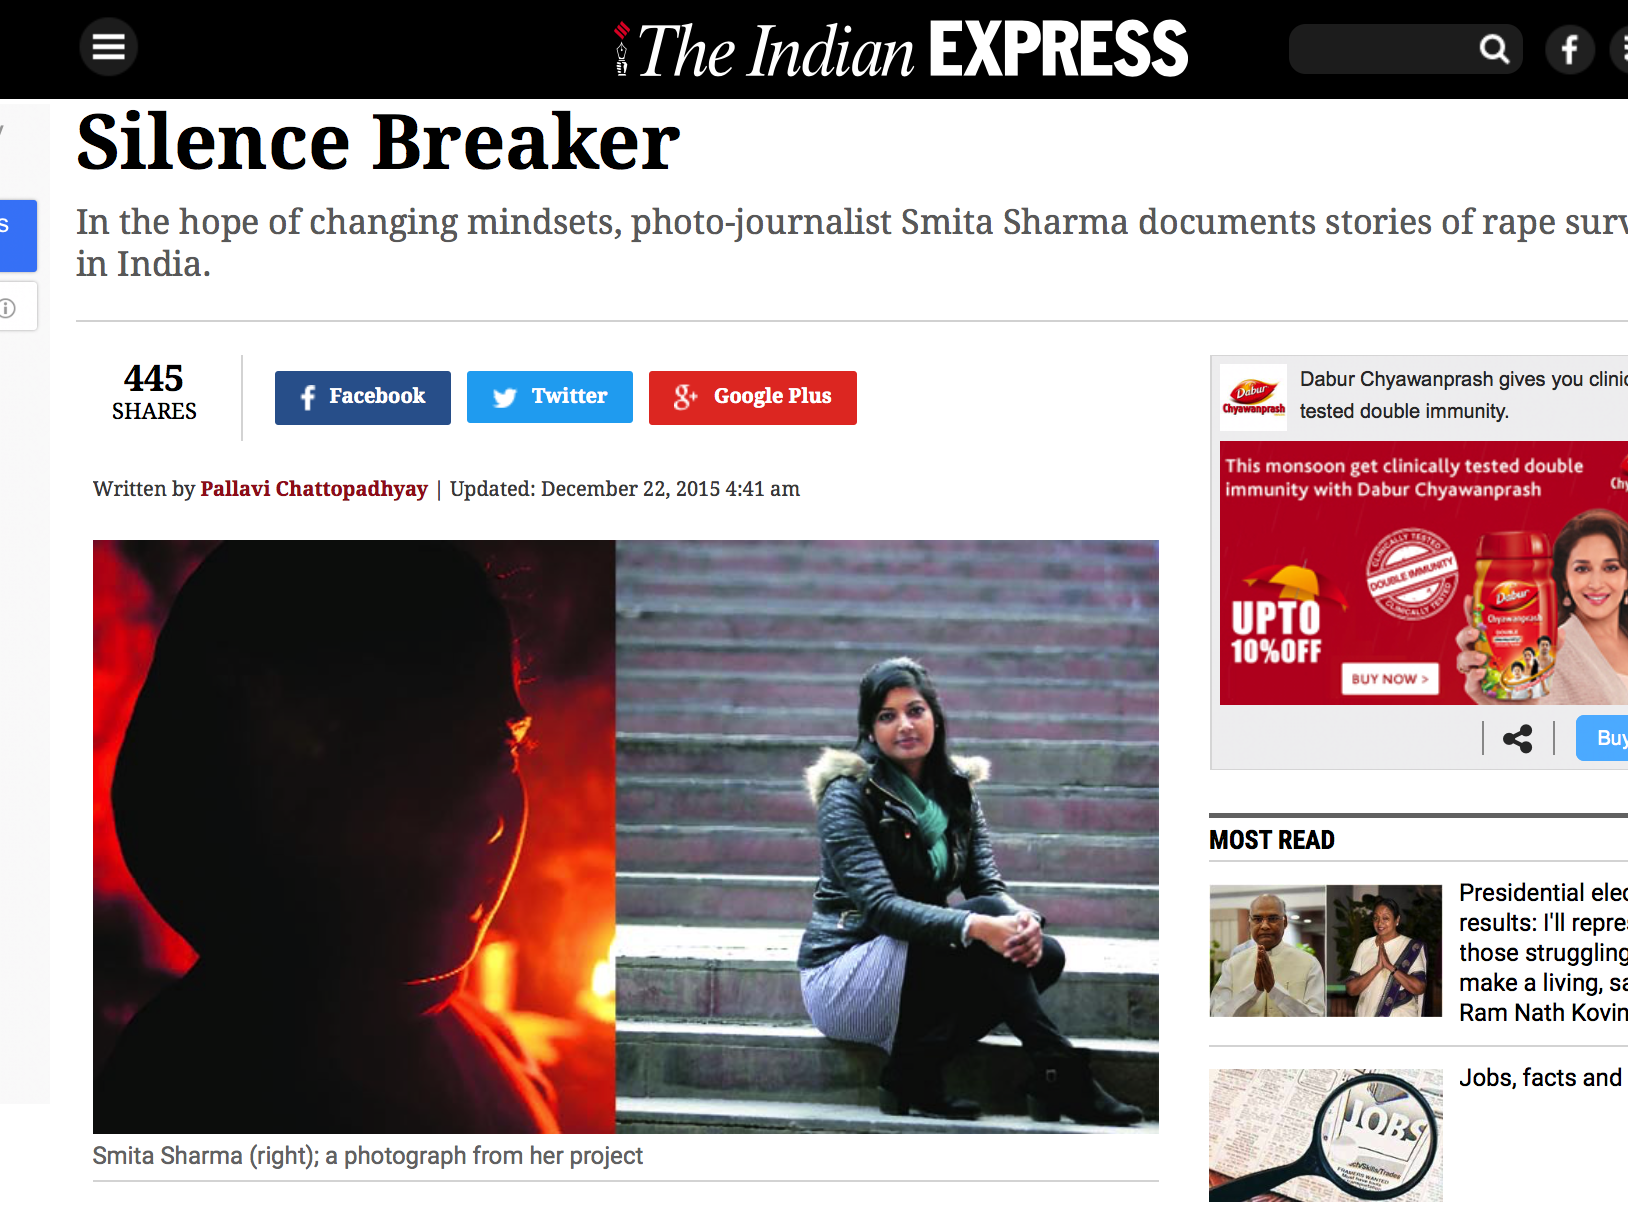 https://indianexpress.com/article/lifestyle/art-and-culture/silence-breaker/